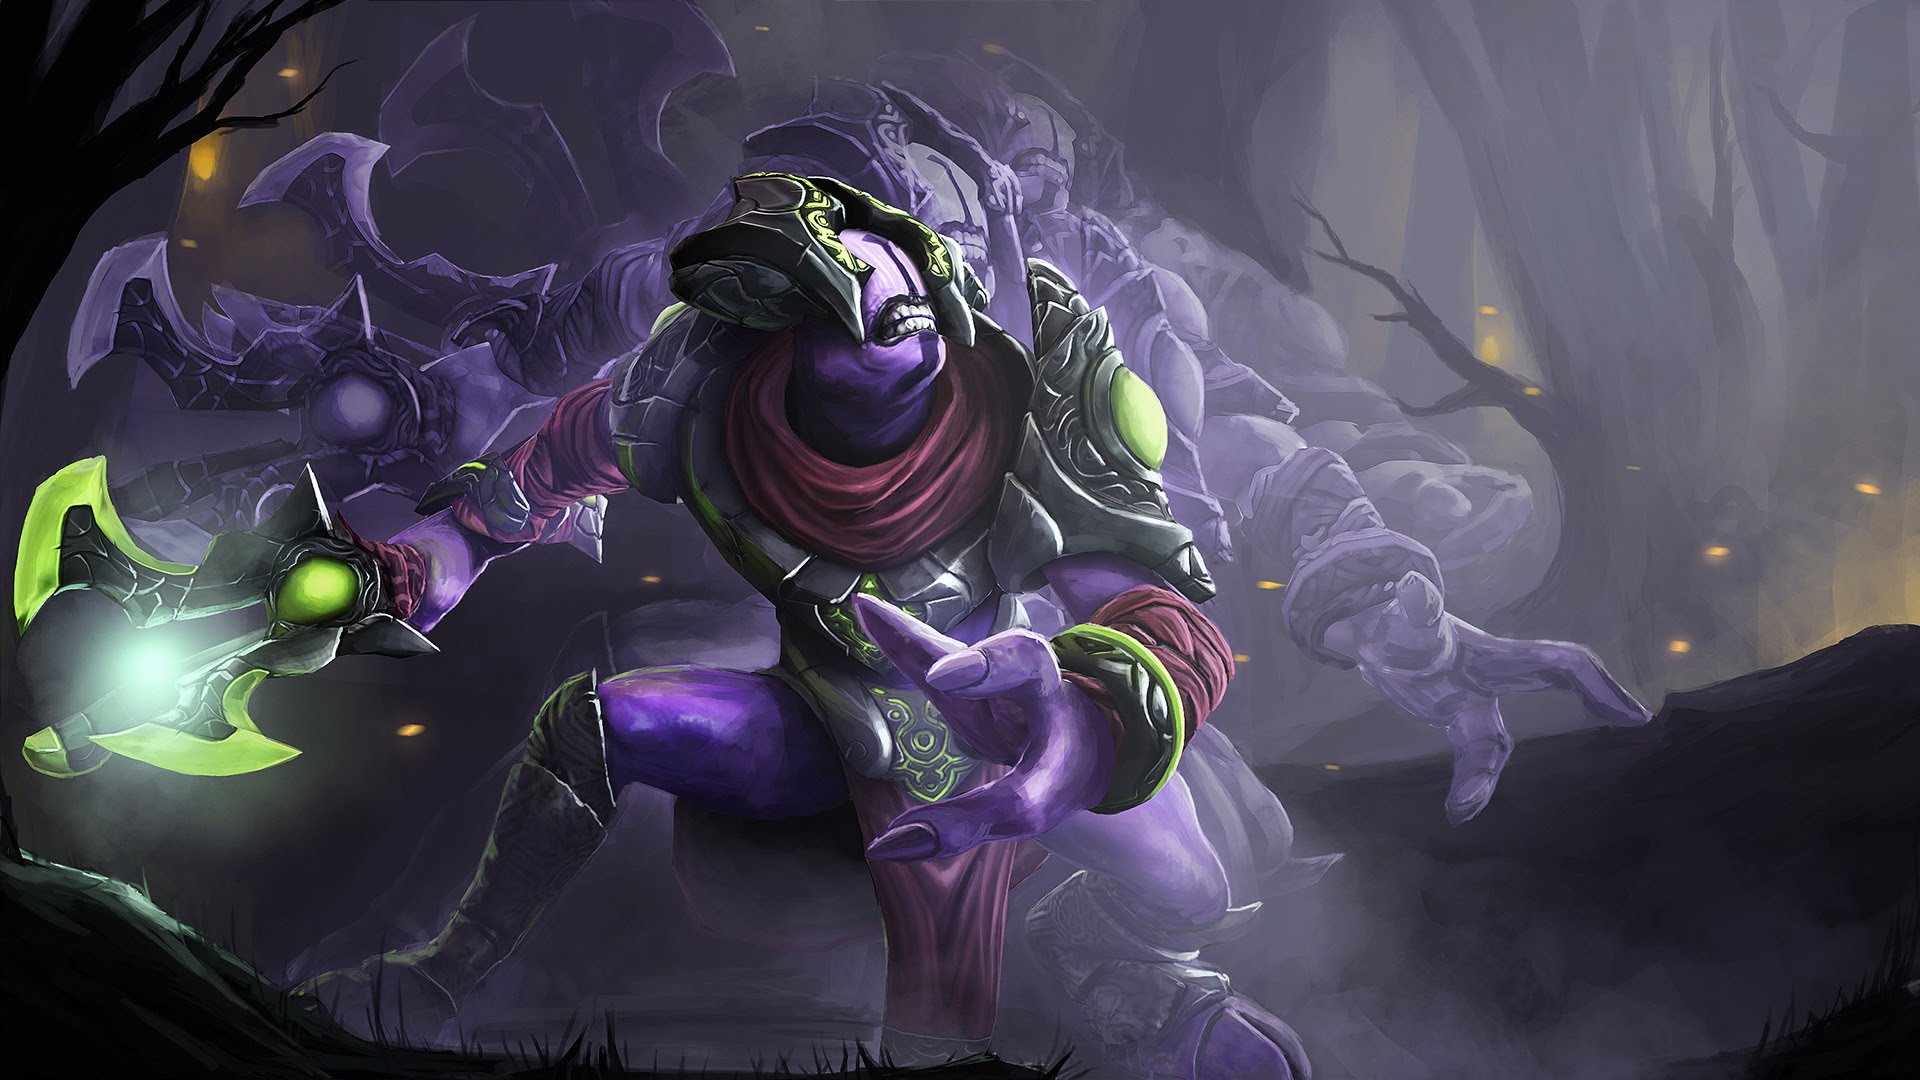 Dota2 : Faceless Void Wallpapers hd